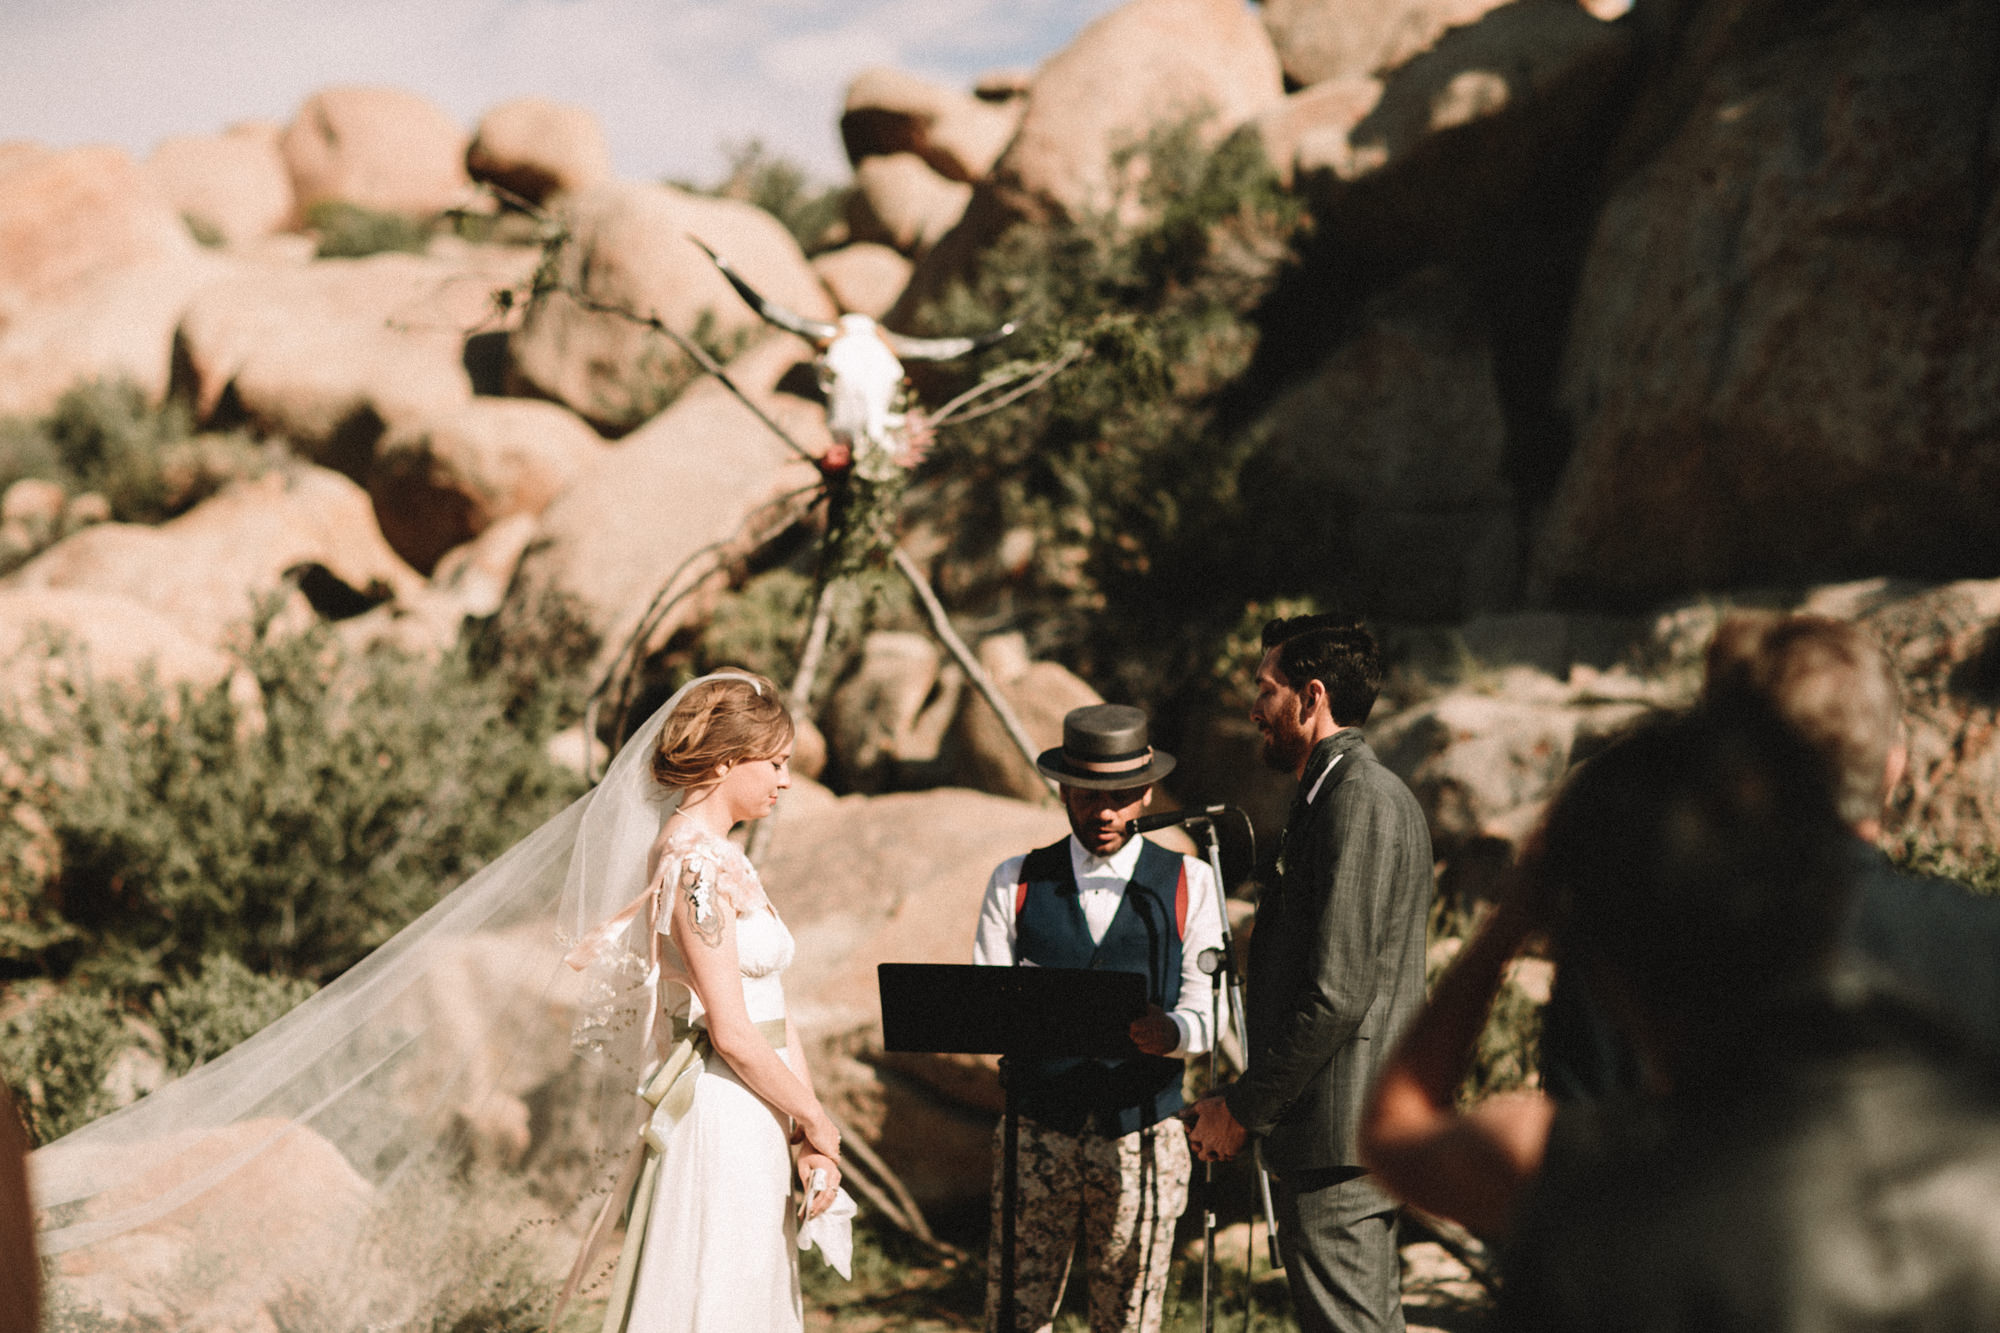 pioneertown-wedding-69.jpg